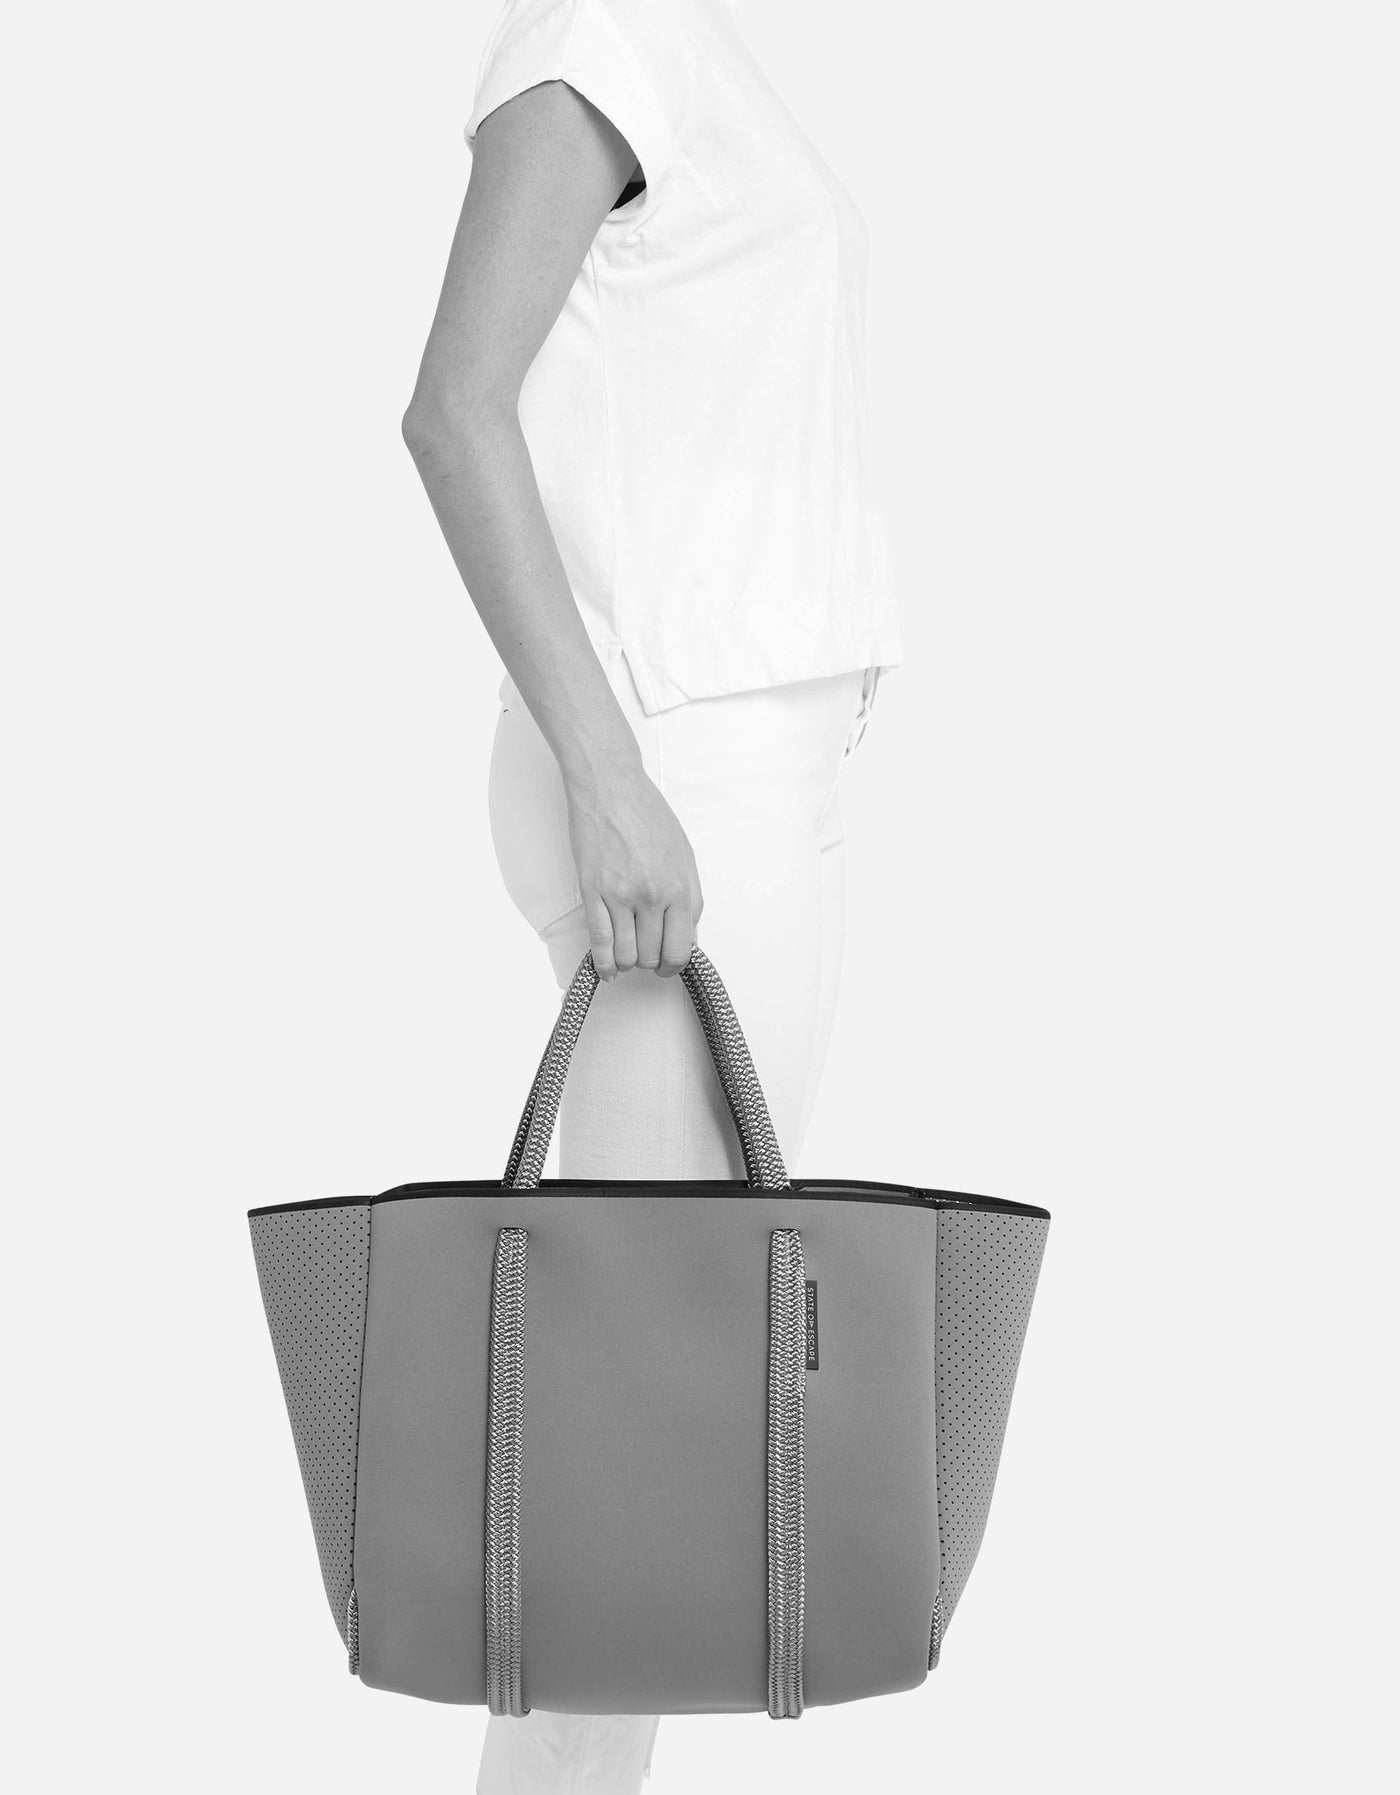 City East West tote in smoke